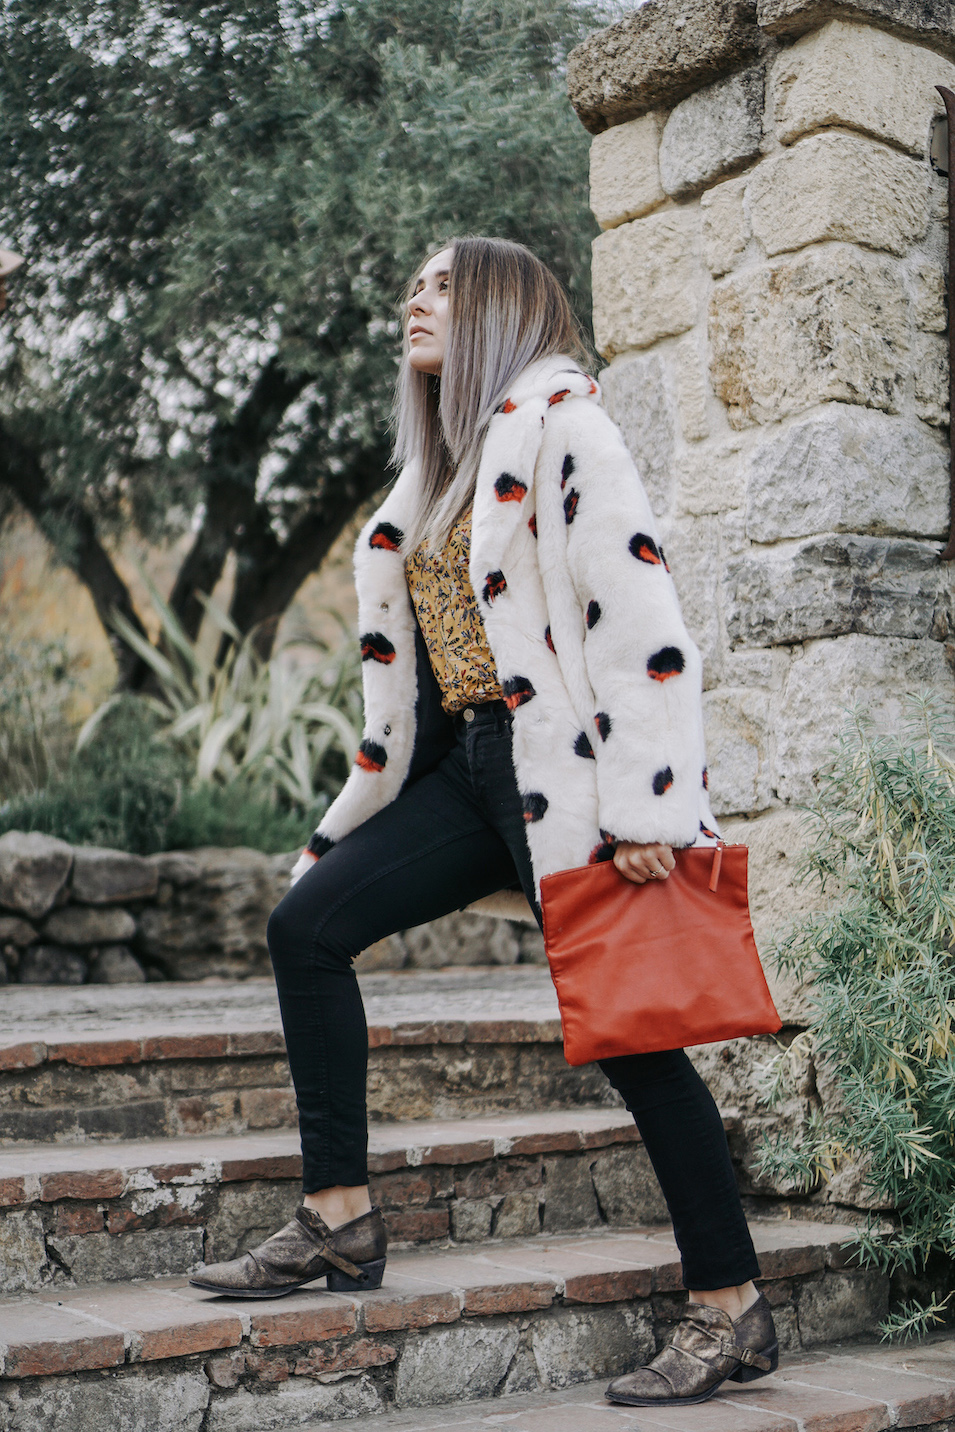 Thrifted Polka Dot Coat // A Week Of Uncompromising Sustainable Style With Sonia Kessler From Native Styling on The Good Trade